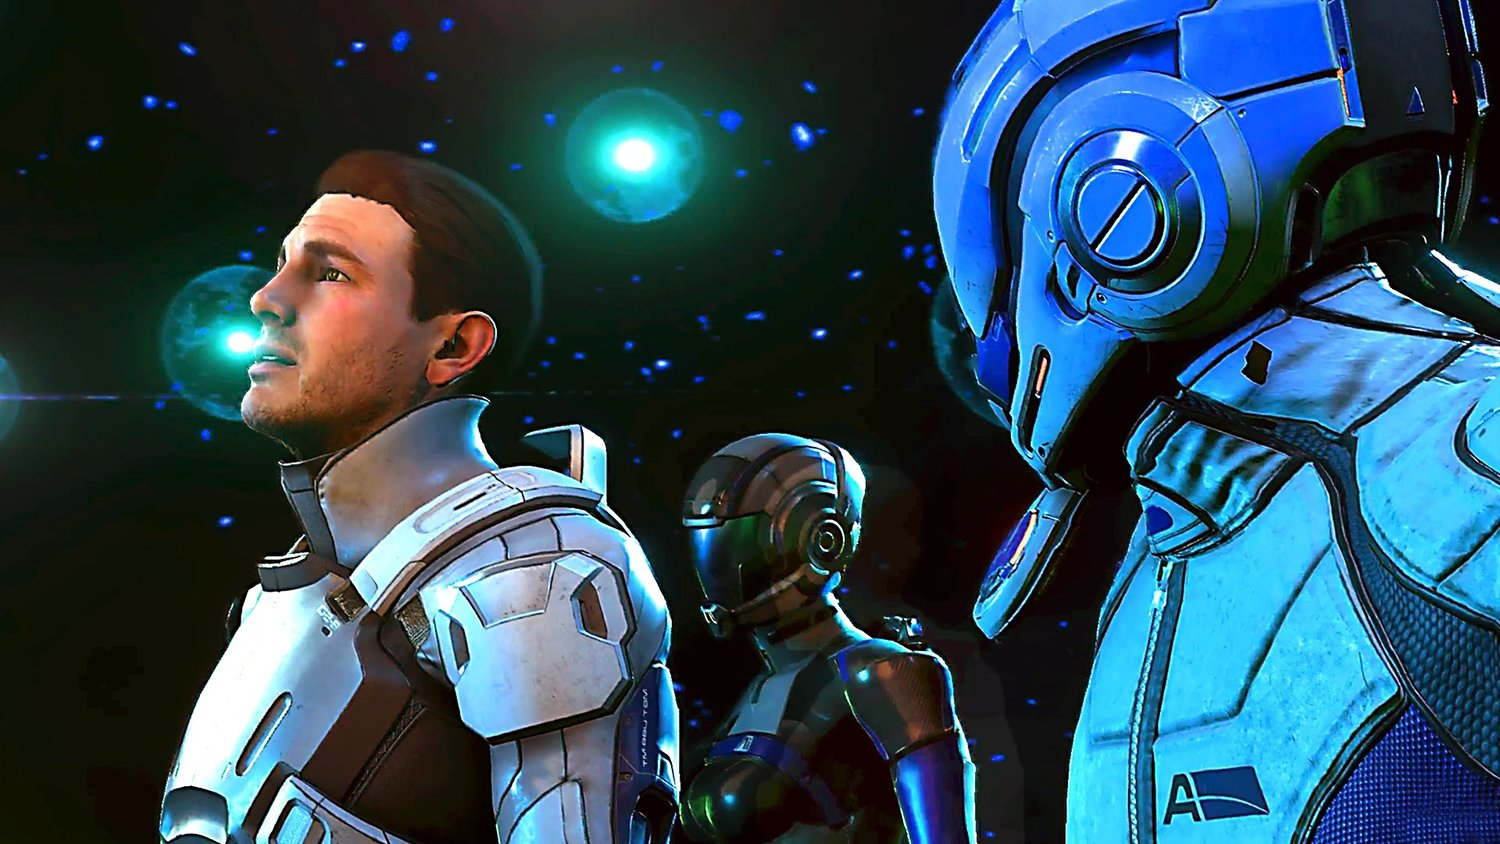 MASS EFFECT: ANDROMEDA Team Explains Why They Got Rid Of Paragon And Renegade System